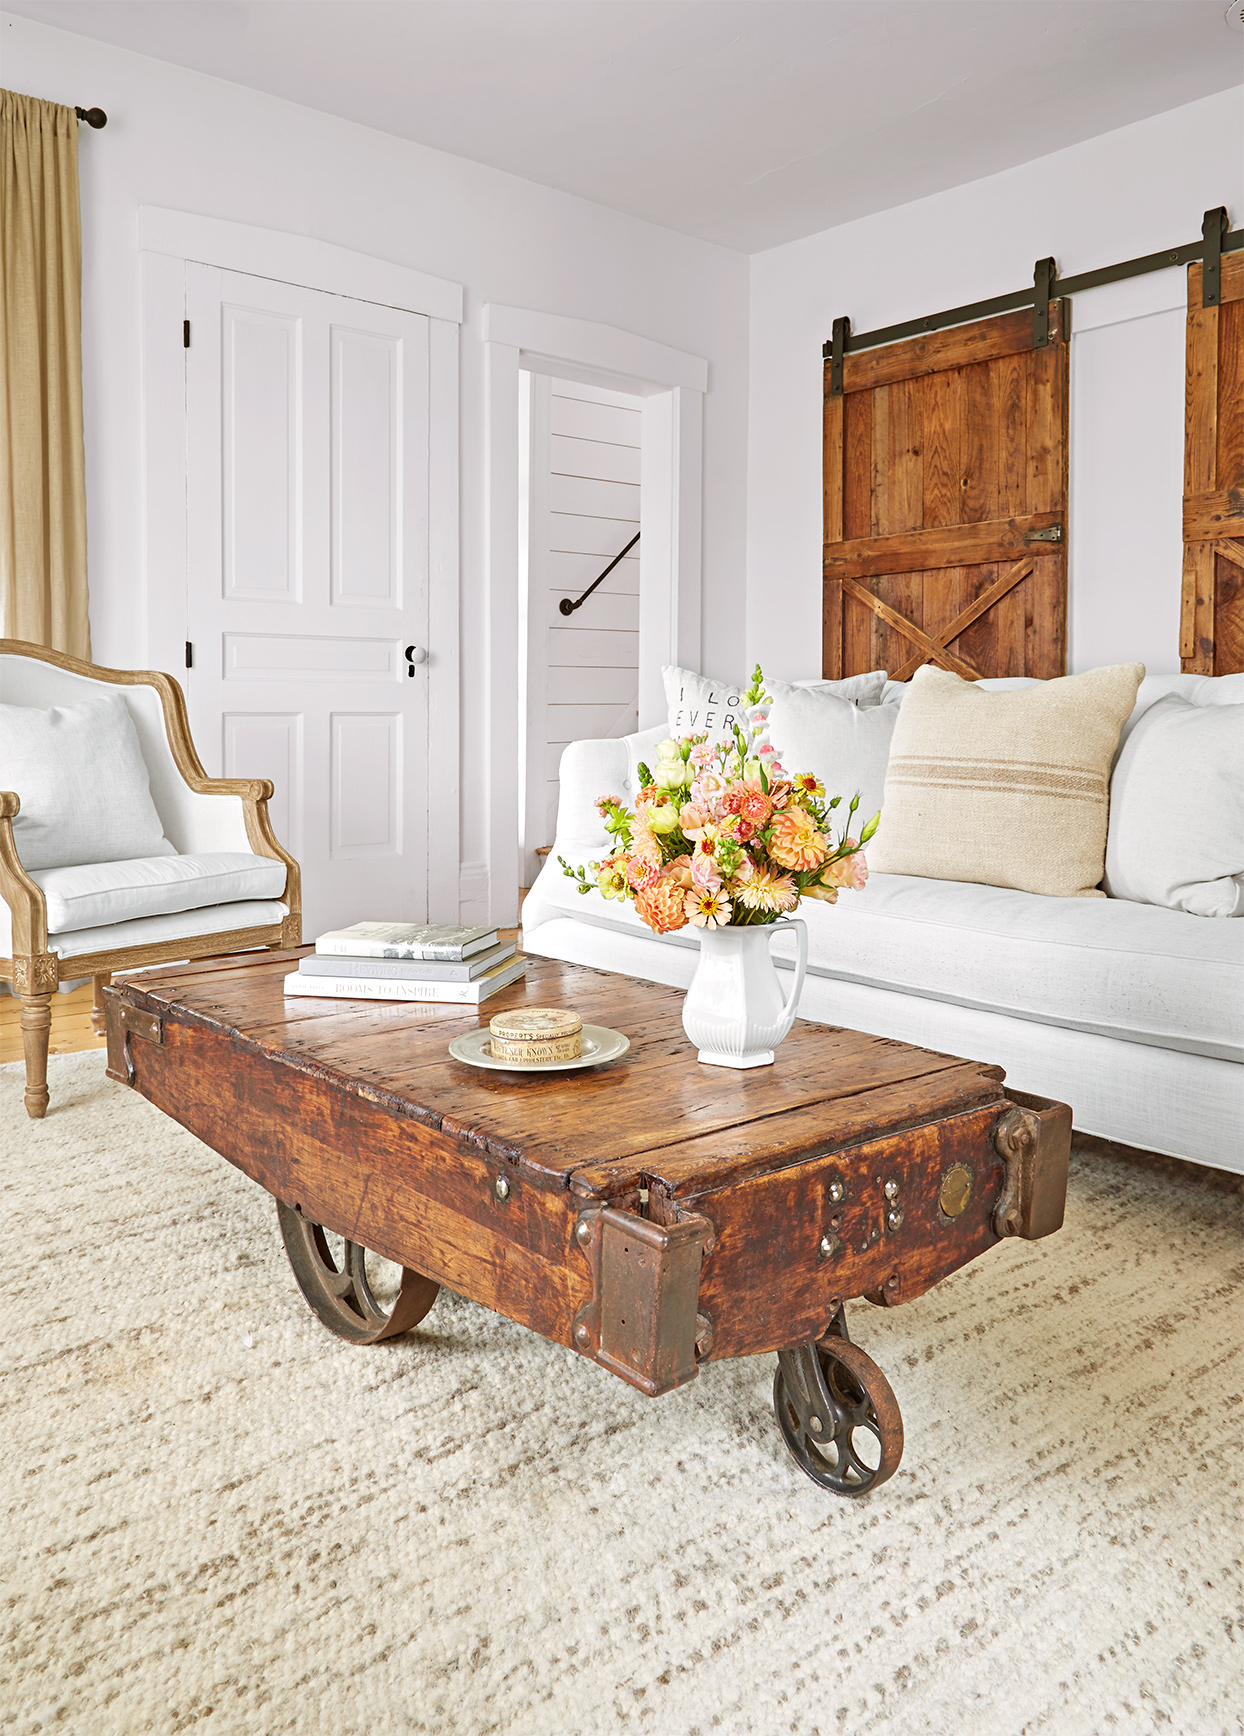 15 Farmhouse Living Room Ideas We Can't Get Enough Of ... on Farmhouse Living Room Curtains  id=53842